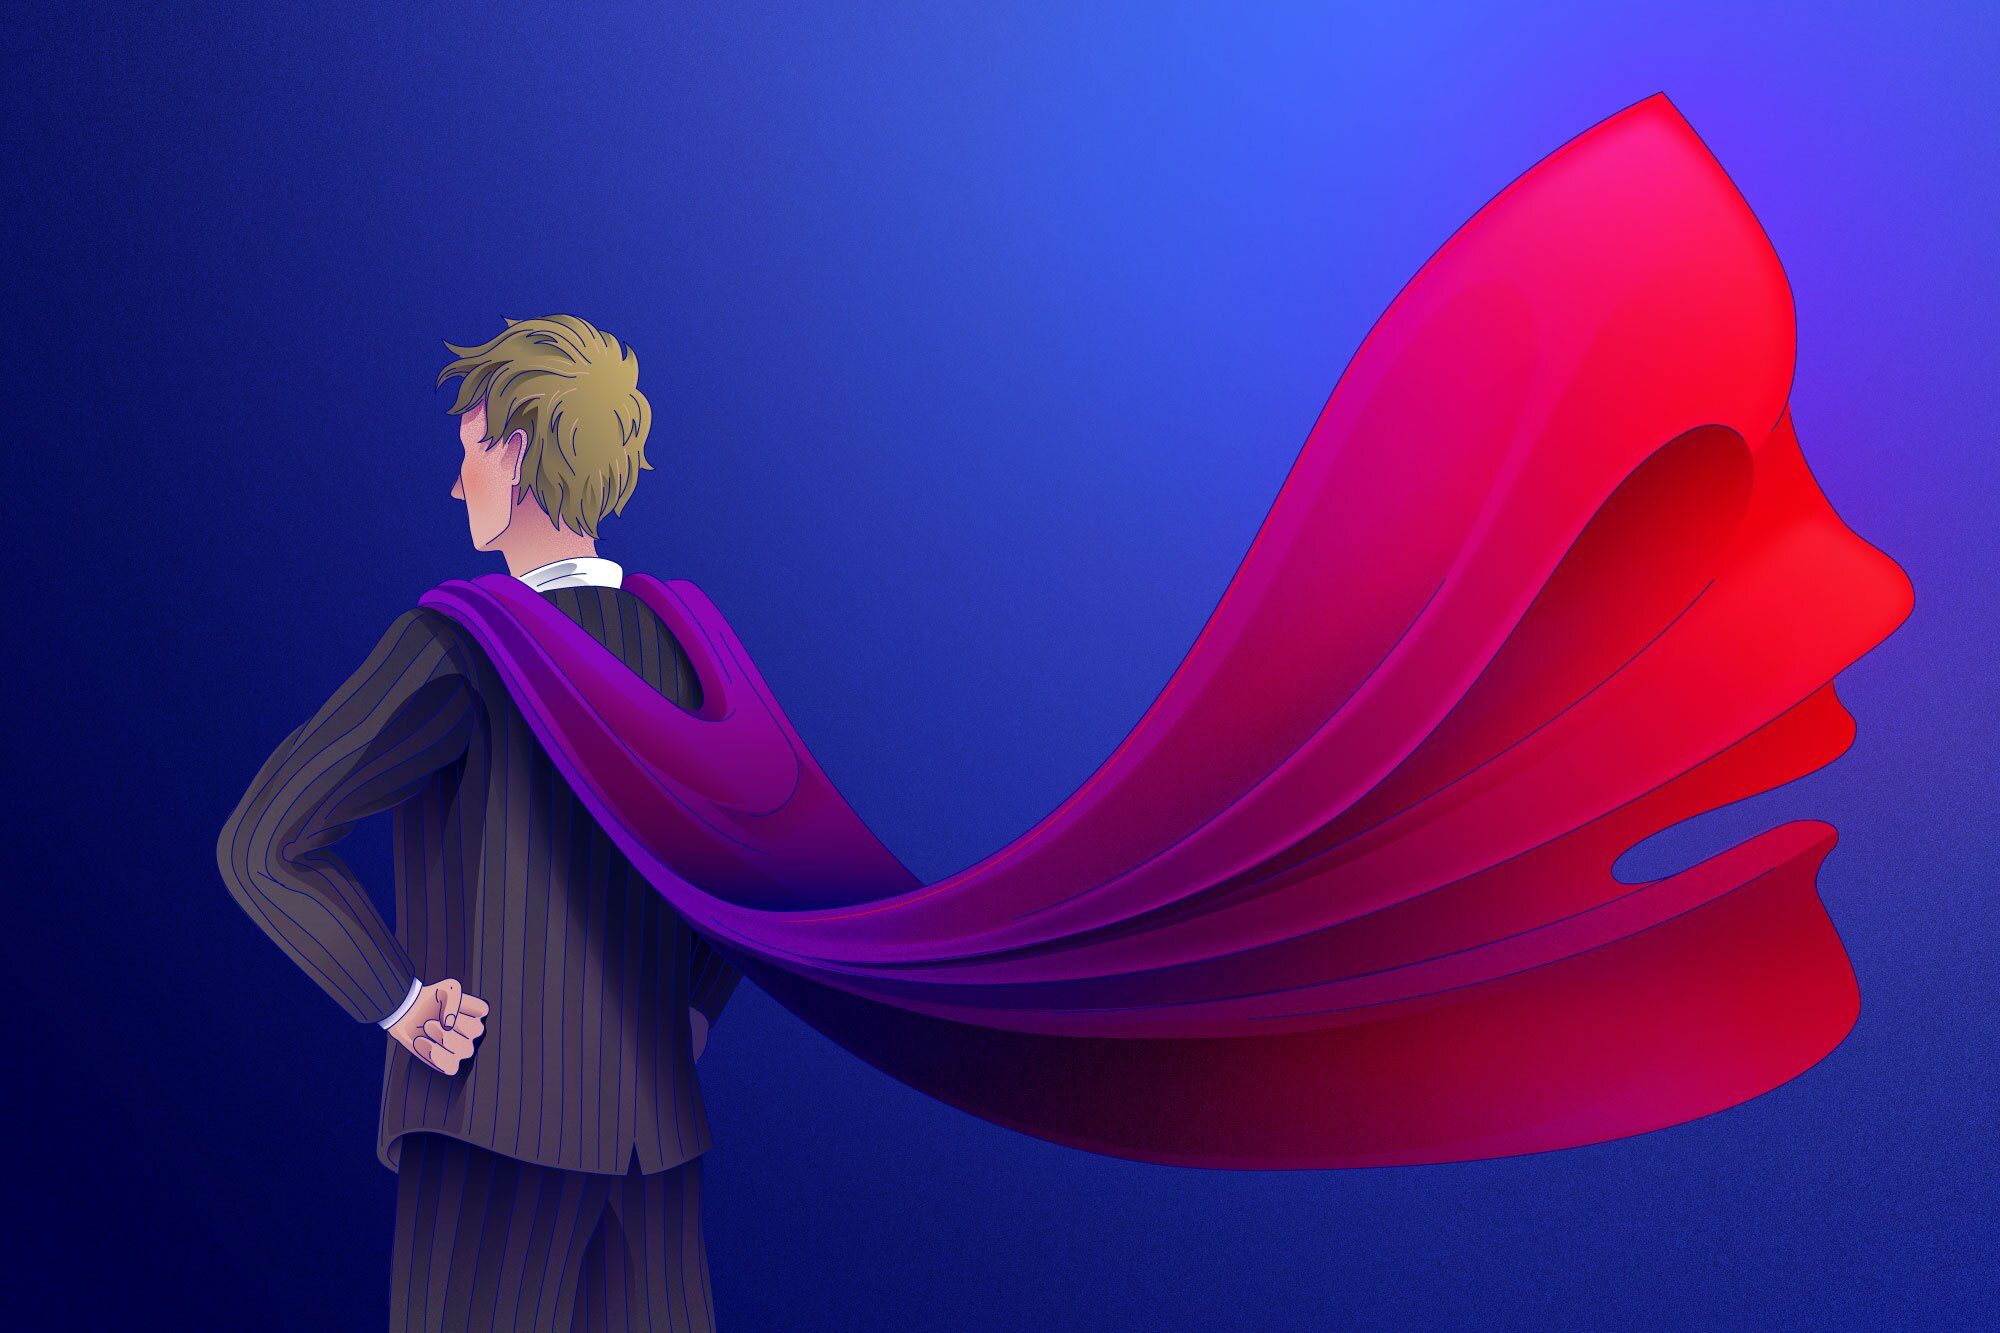 Illustration of talent agent wearing superhero cape with female silhouette